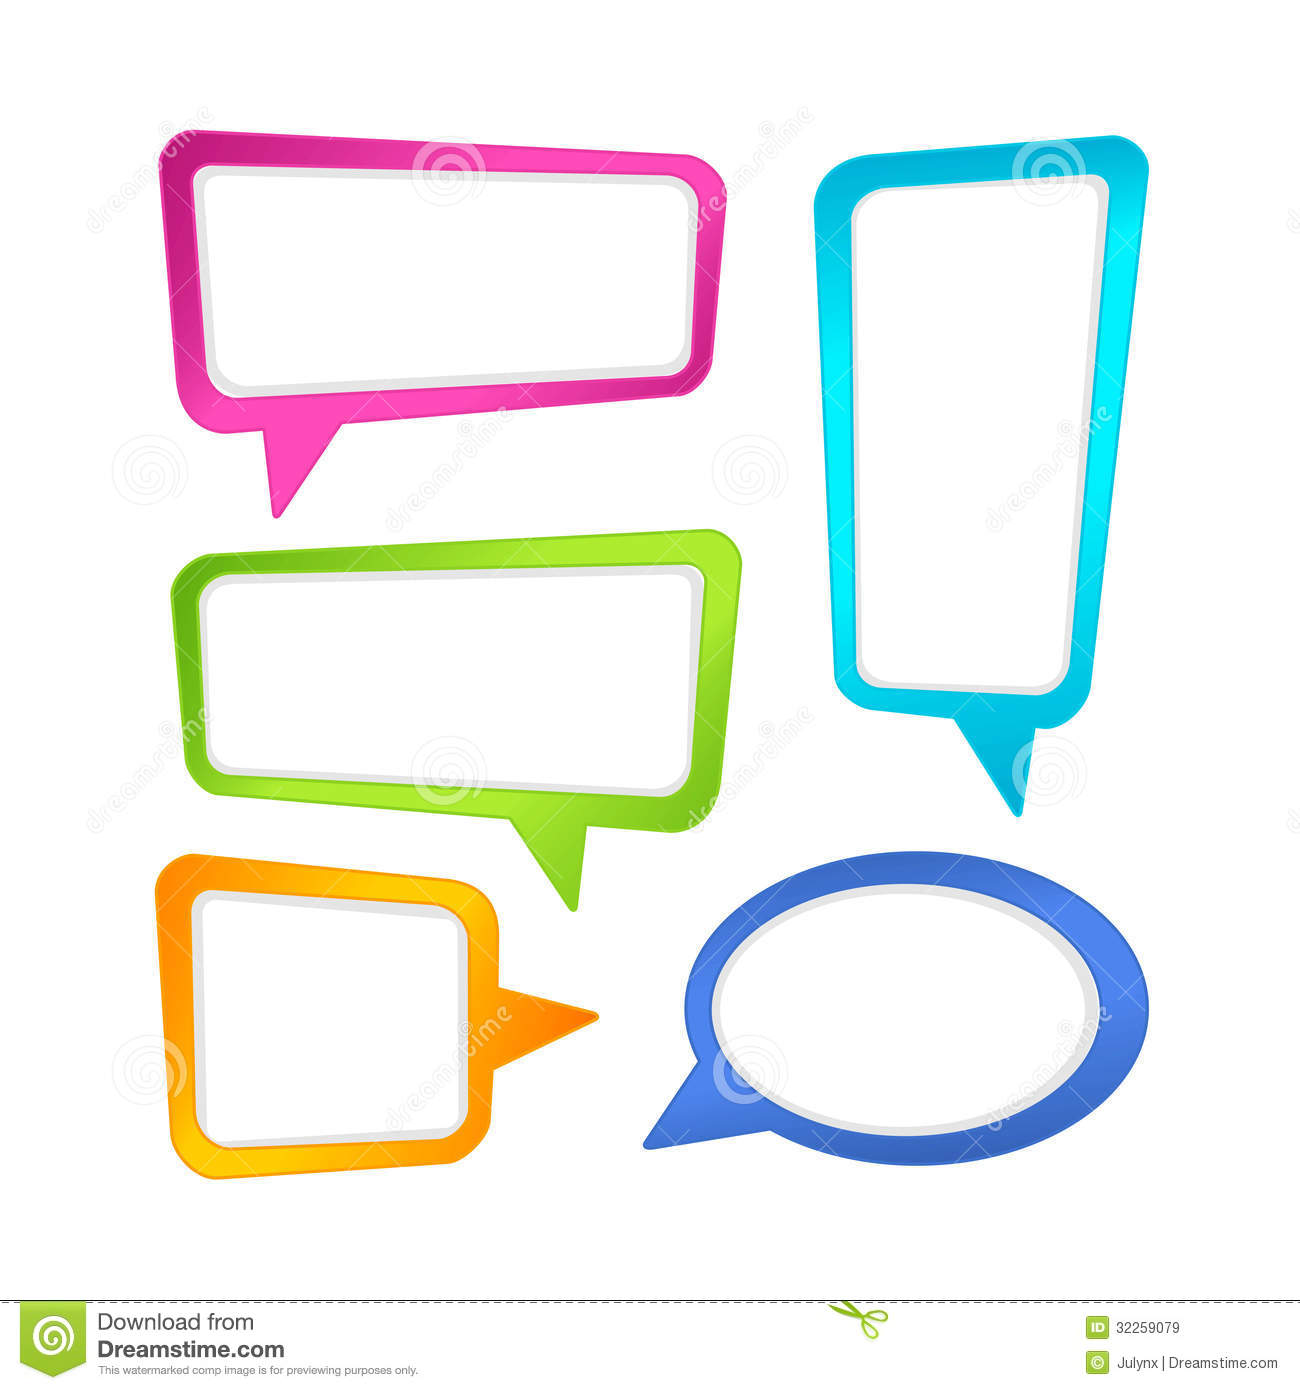 Colorful Speech Bubble Frames Royalty Free Stock Images - Image ...